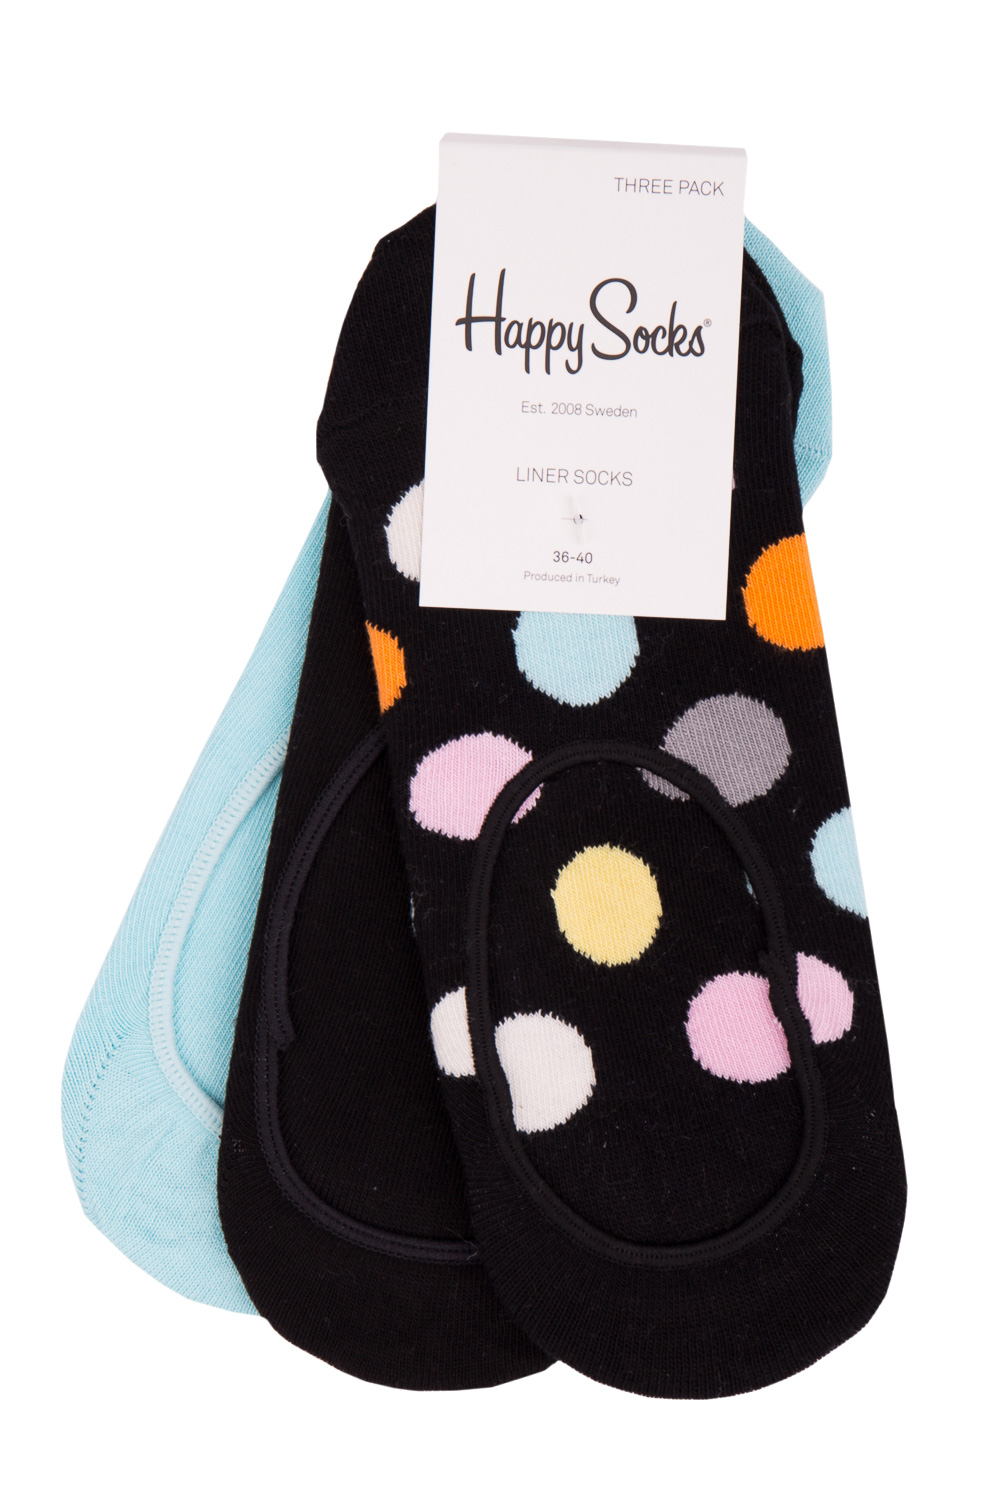 Happy Socks 3 pack színes zokni tornacipôhöz  Big Dot